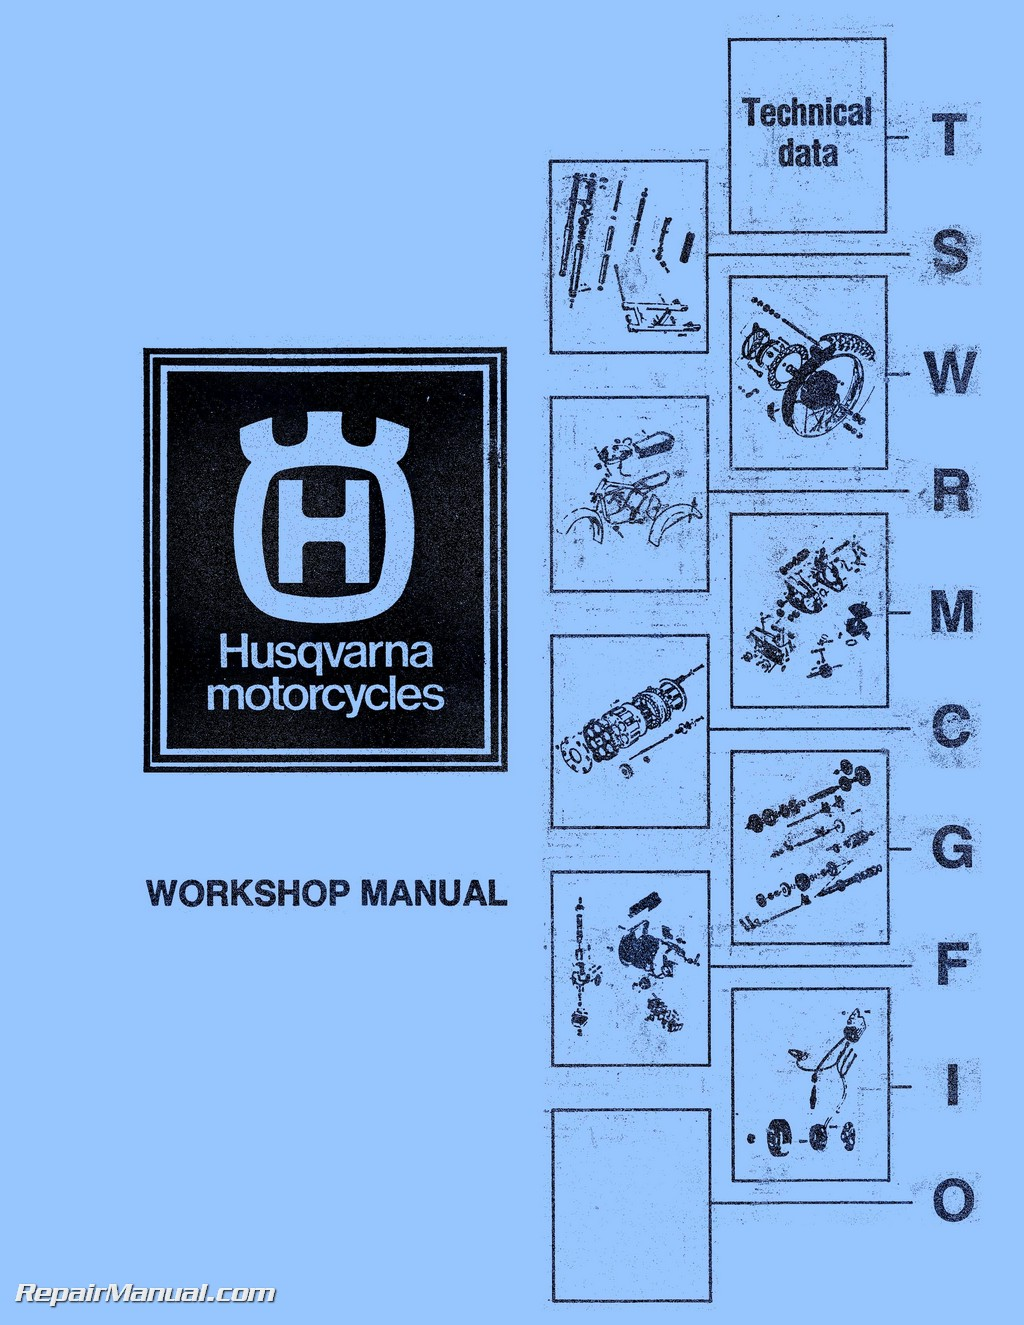 husqvarna parts manual motorcycle